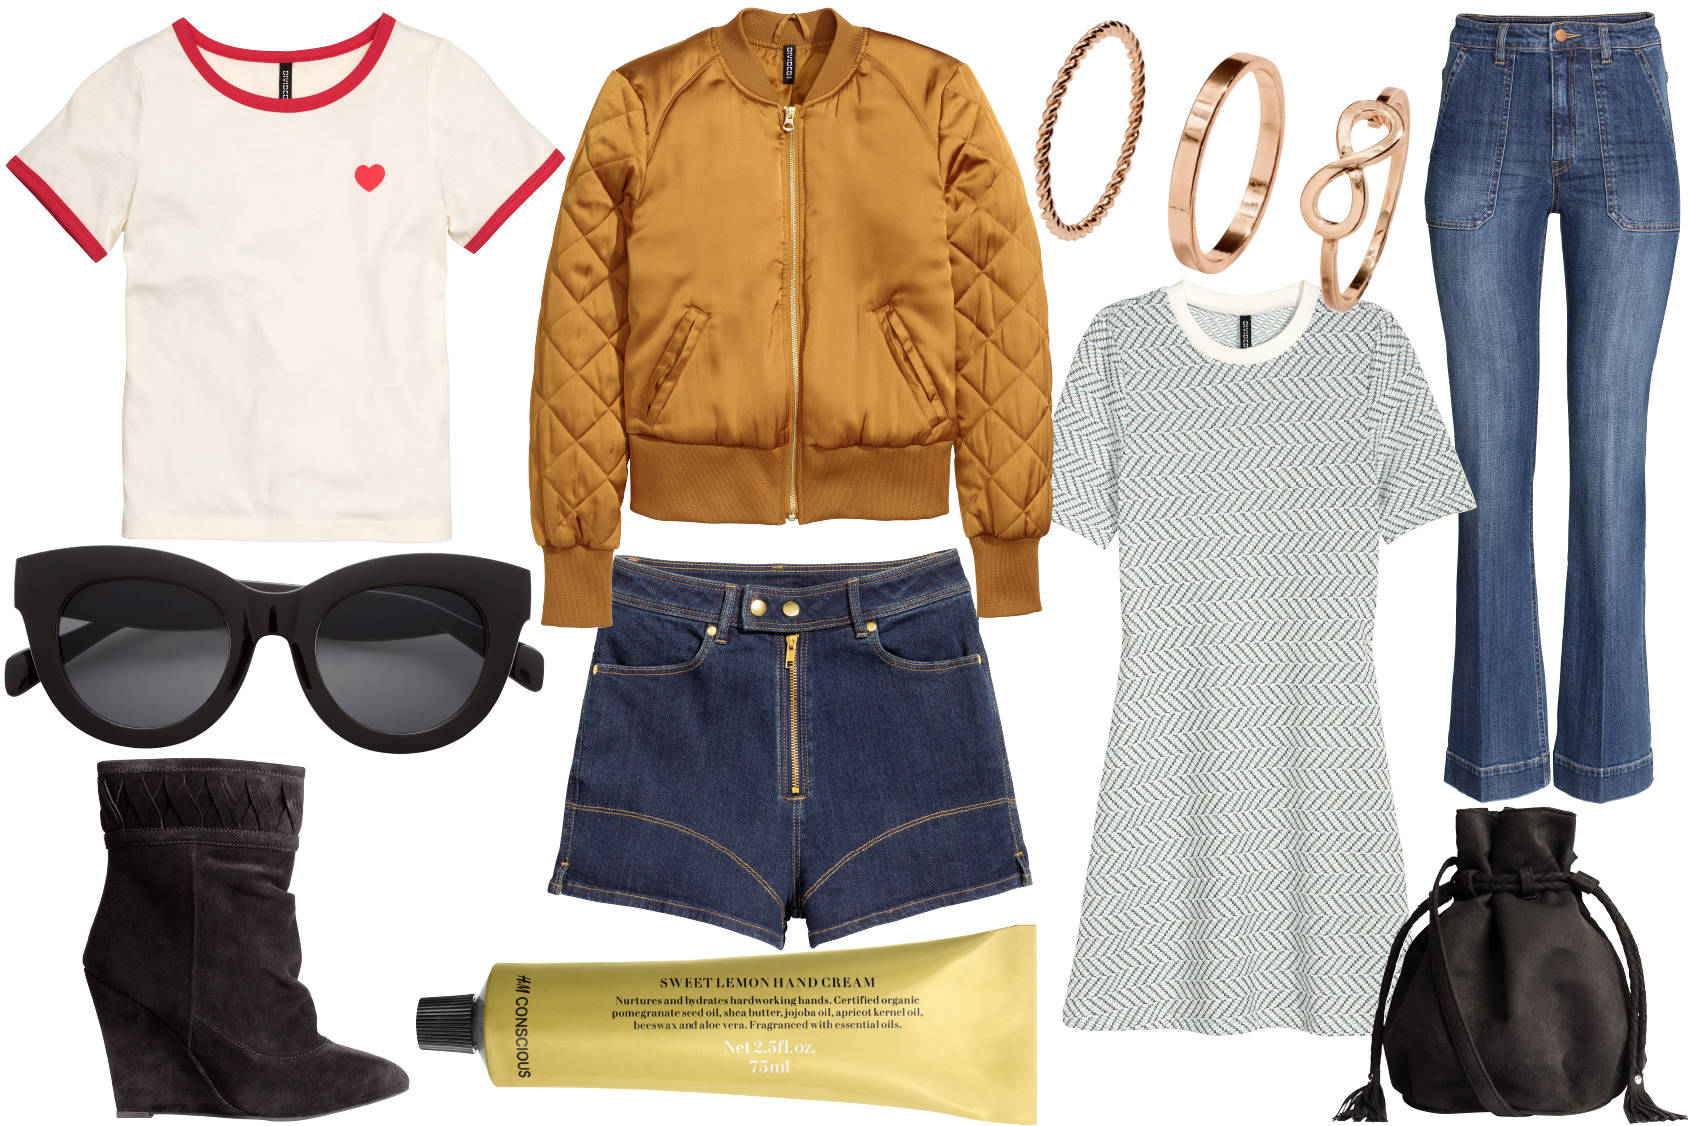 THIS WEEK'S FASHION FINDS, w. 5